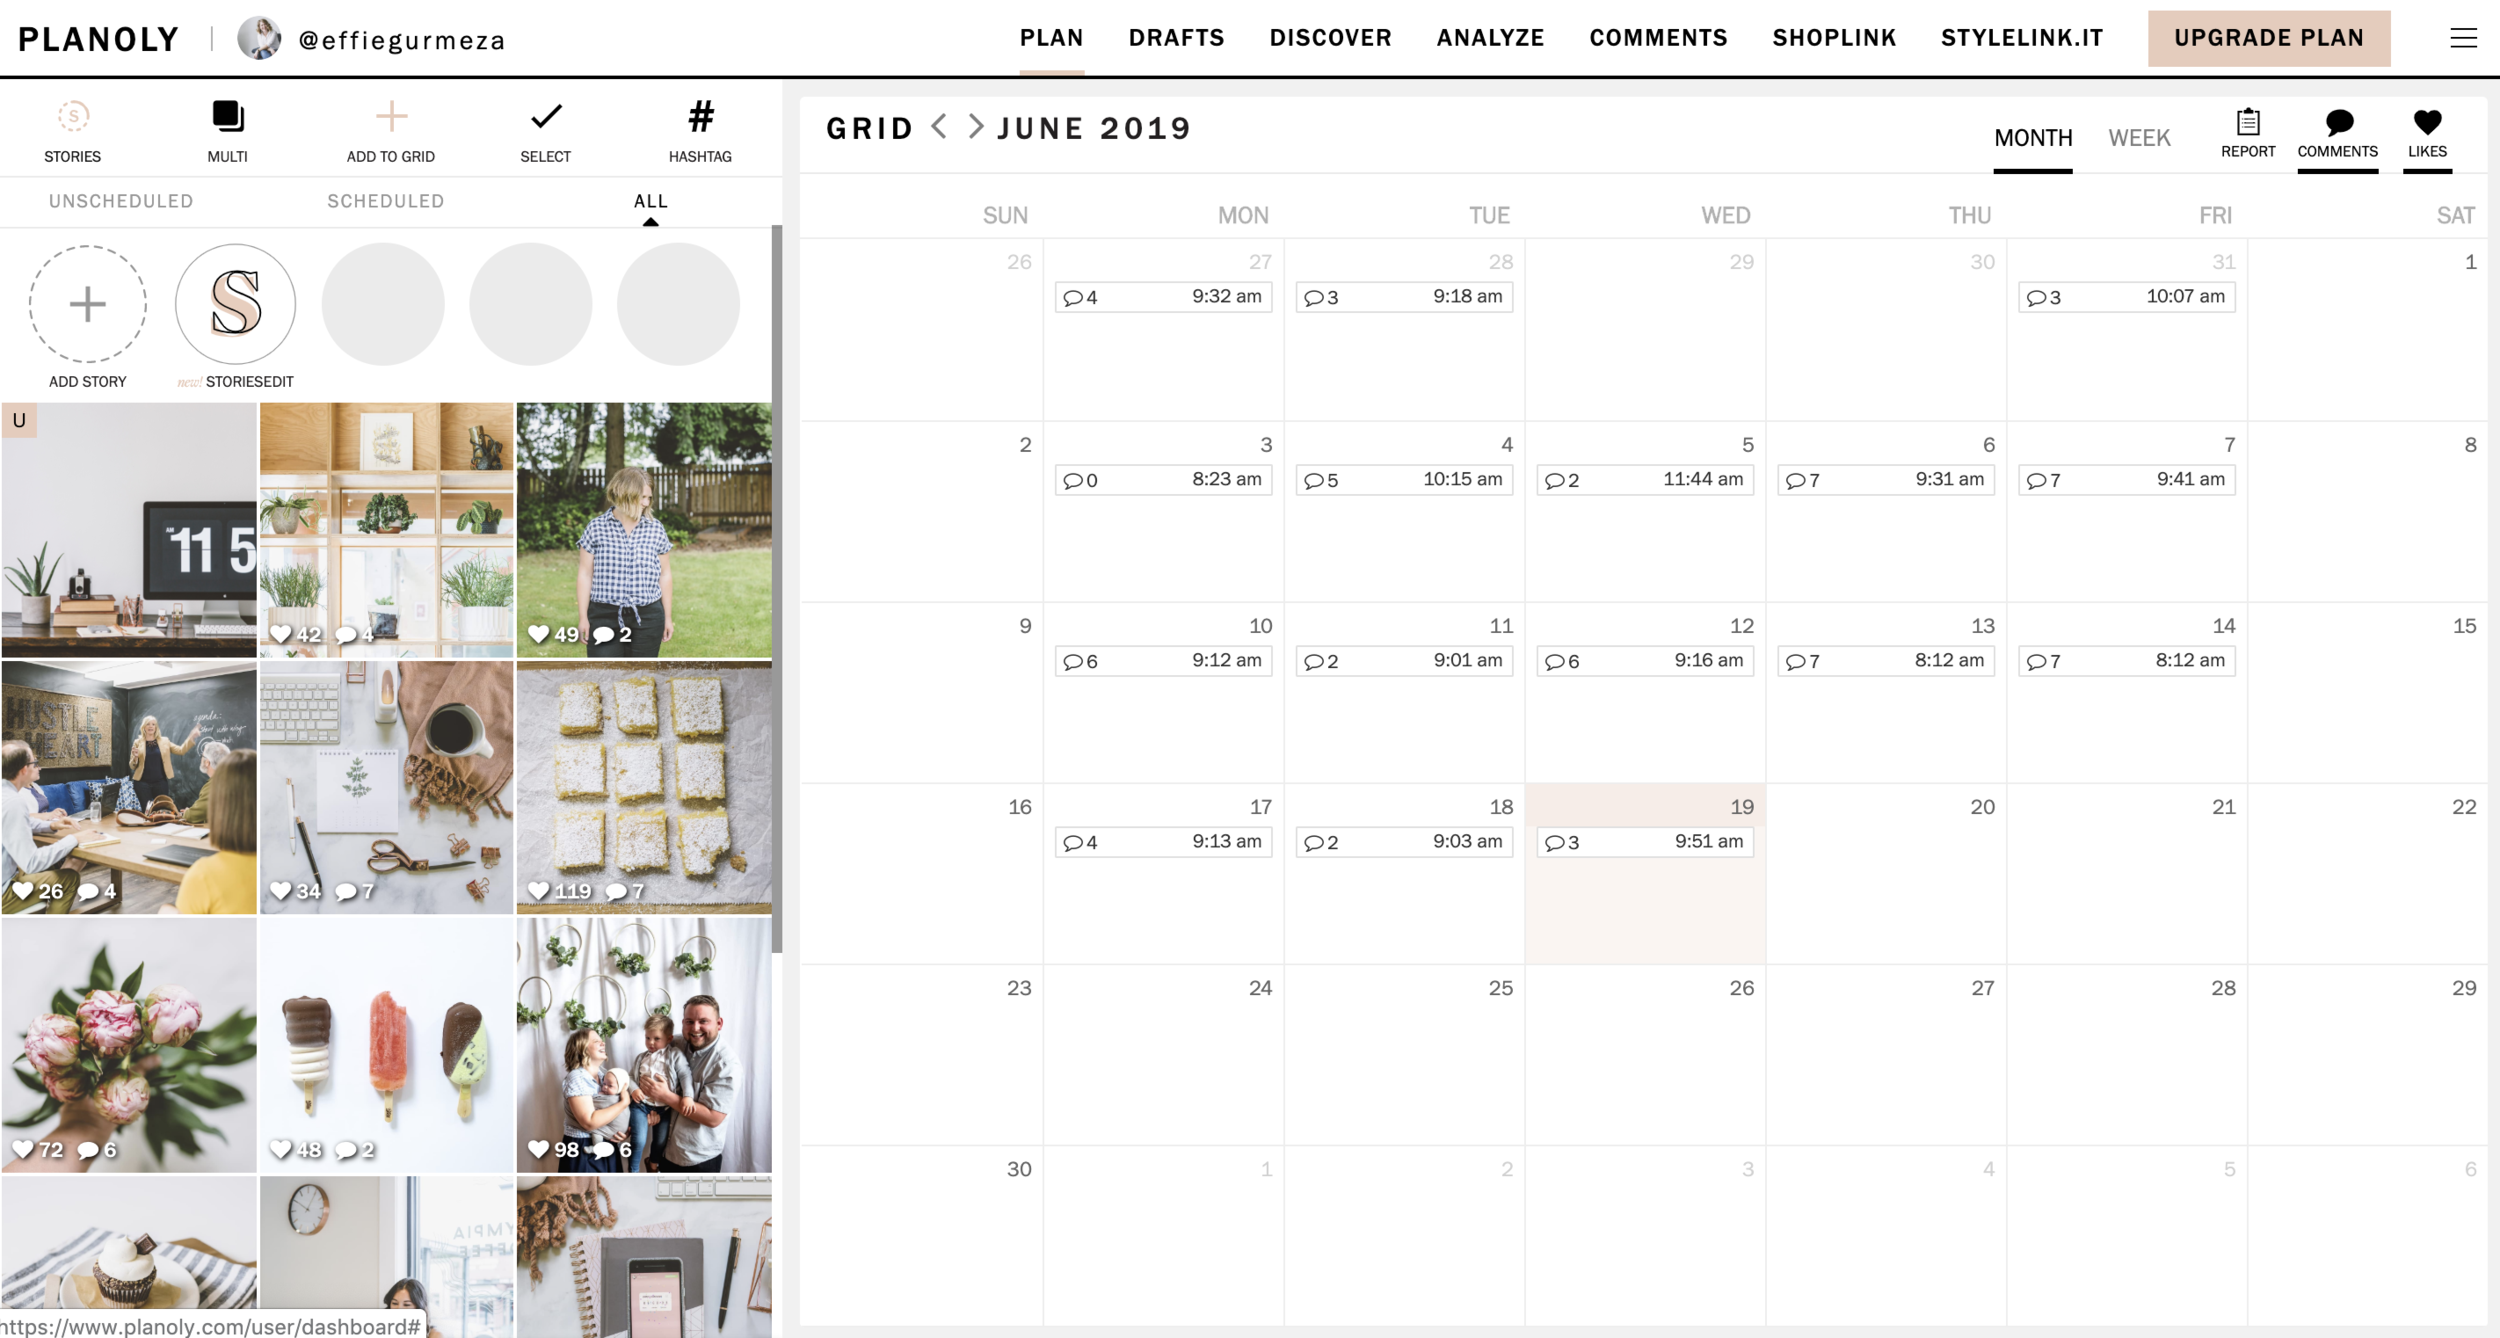 """Here you can see that the photo I've selected shows up in my grid with a """"u"""" for unscheduled. If you select multiple photos you can drag them into the order you'd to post them into. This easy dragging to rearrange is a handy feature for planning your grid to flow nicely."""